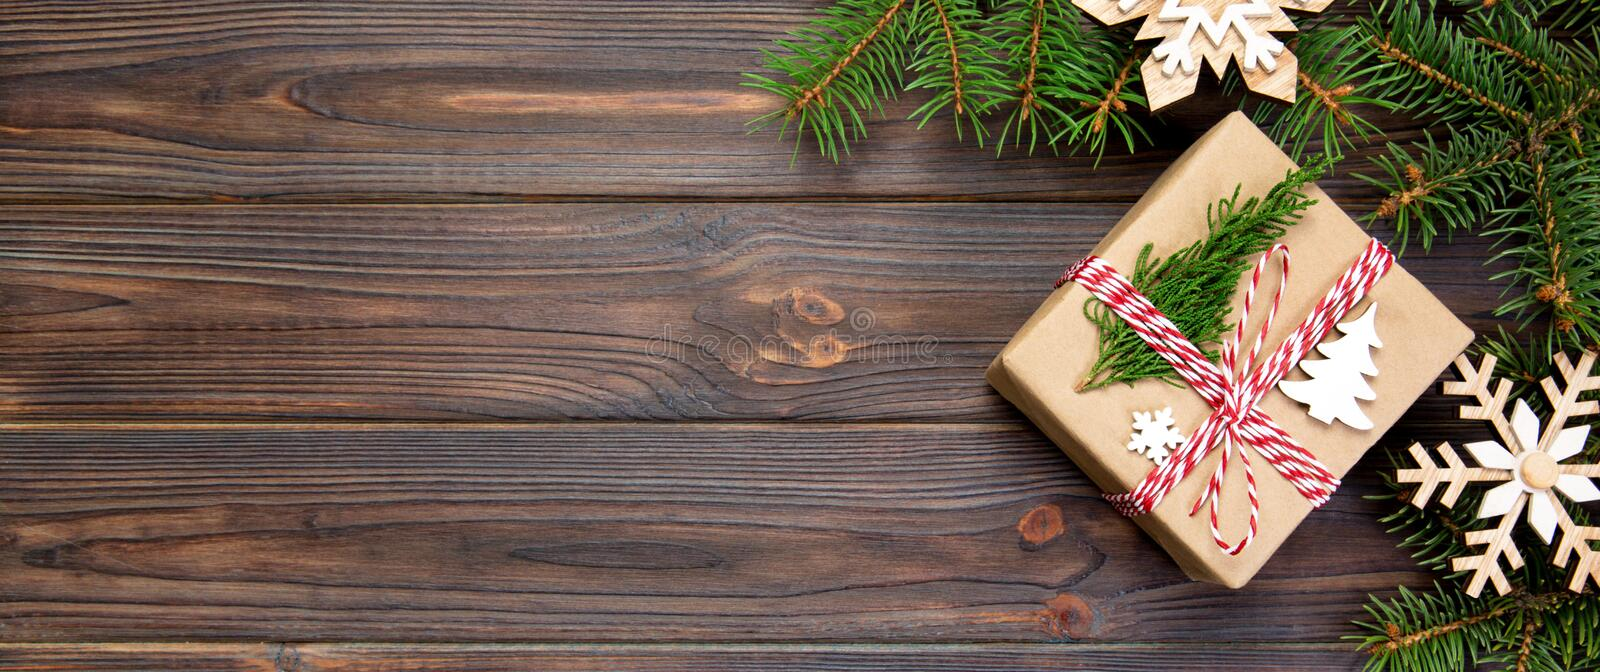 Christmas Background Christmas gift with fir branches and snowflake on wooden white background with banner copy space Flat lay, royalty free stock photos